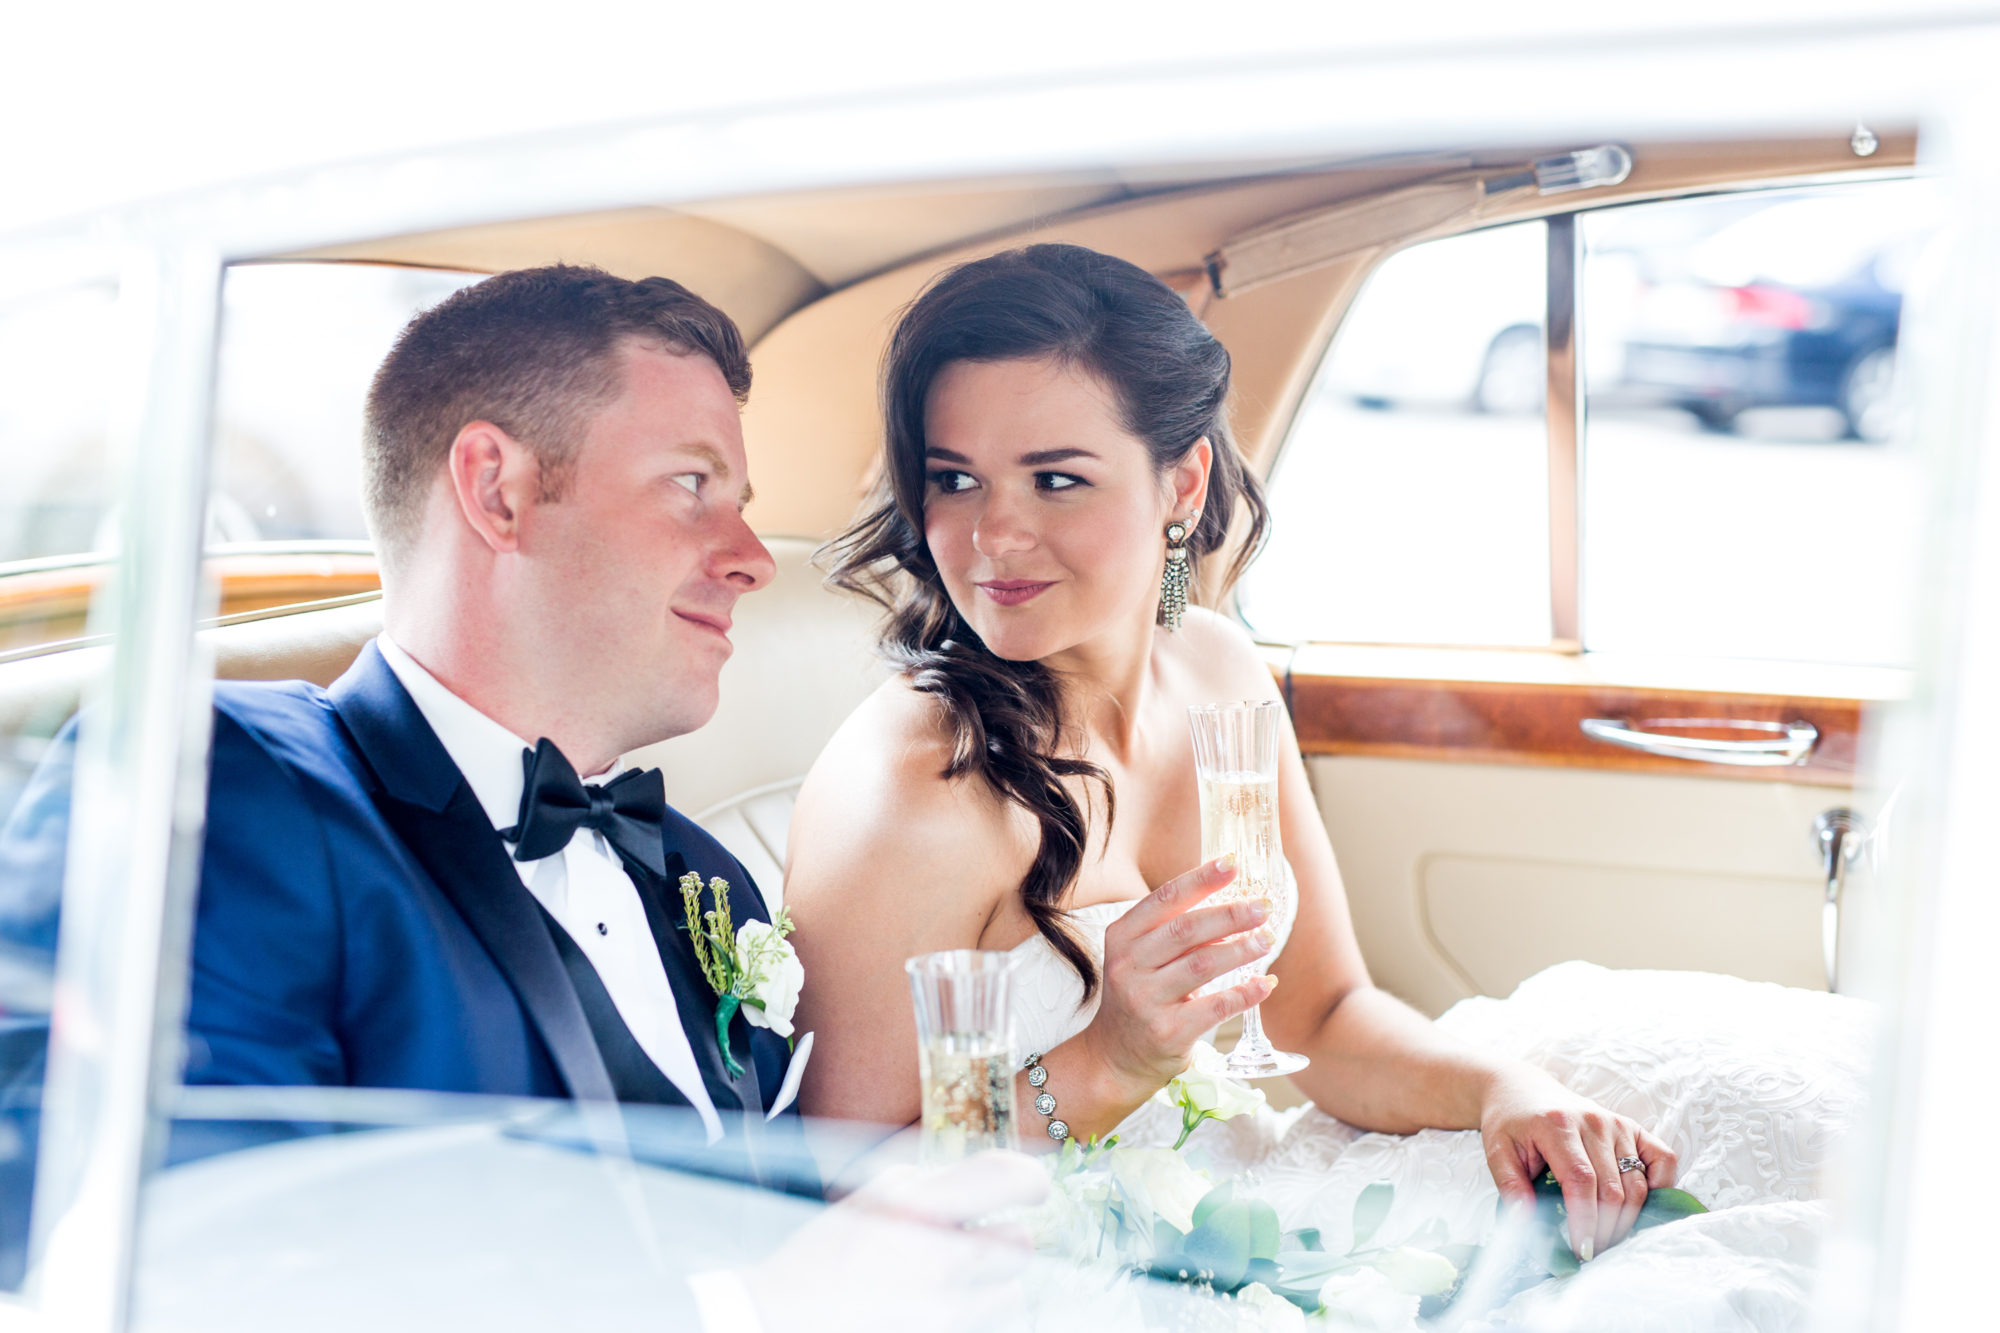 Limo Couple Toronto Wedding Zsuzsi Pal Photography